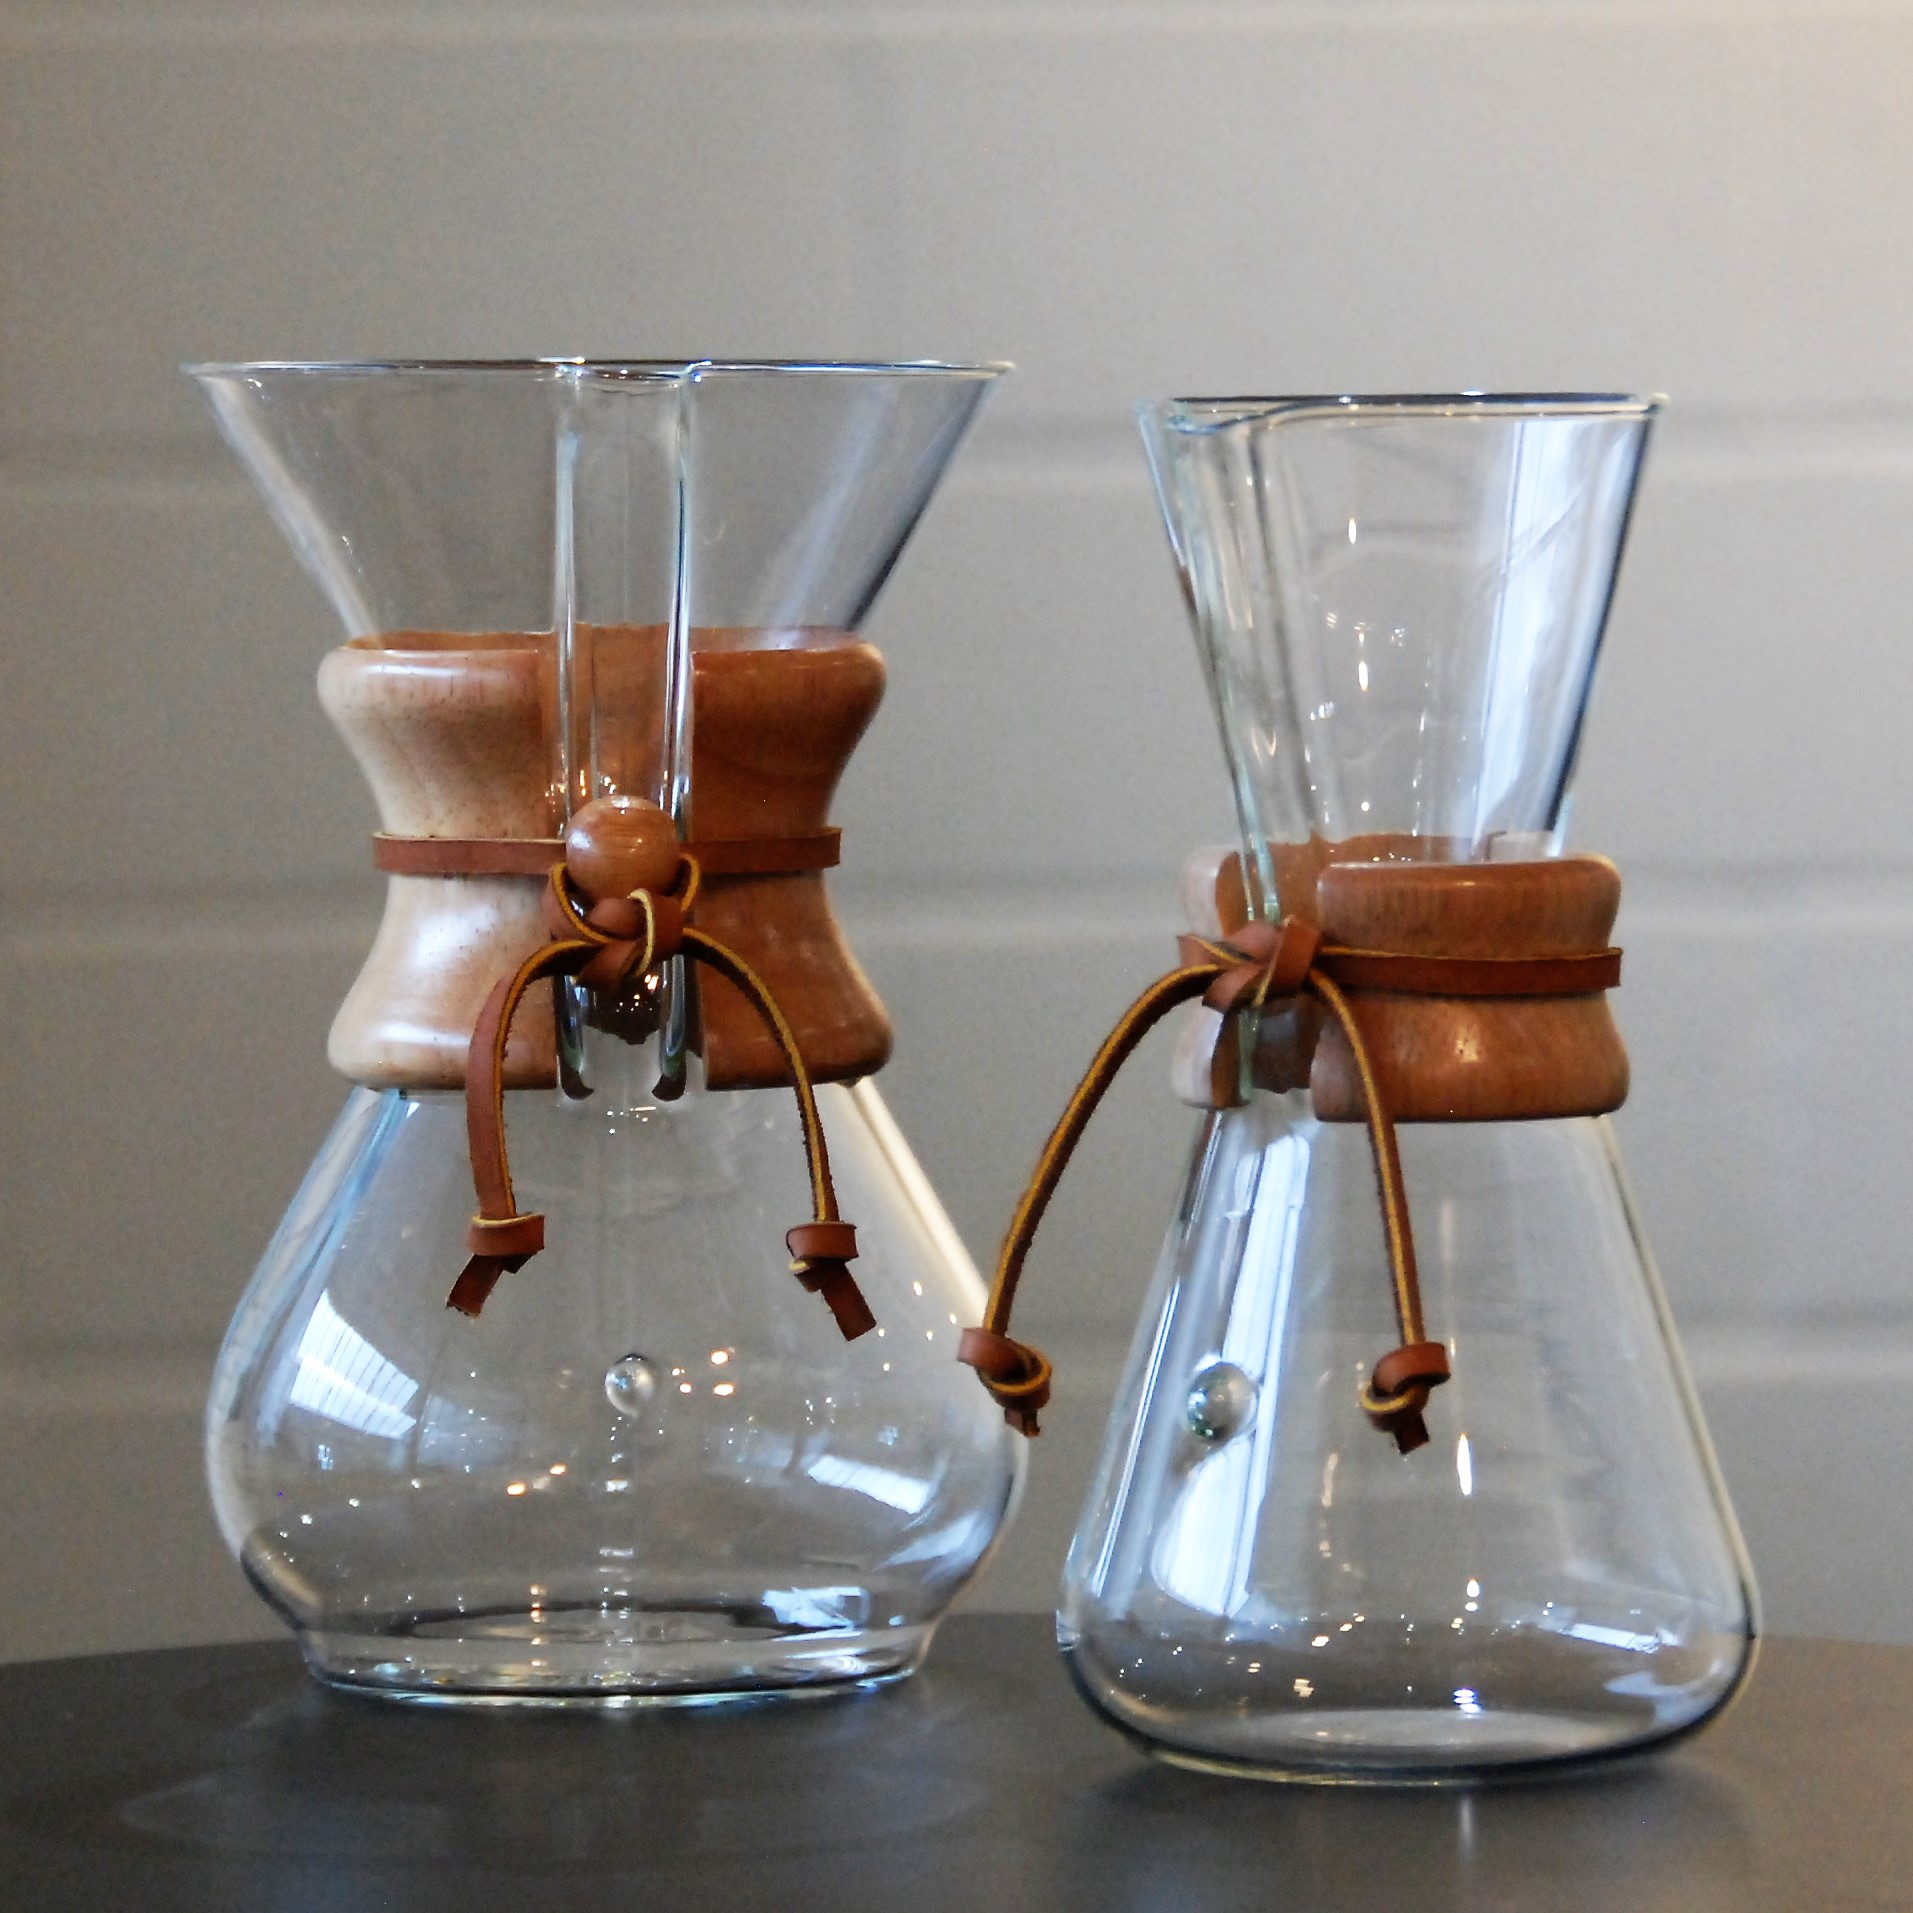 WOODNECK-CHEMEX BREWER